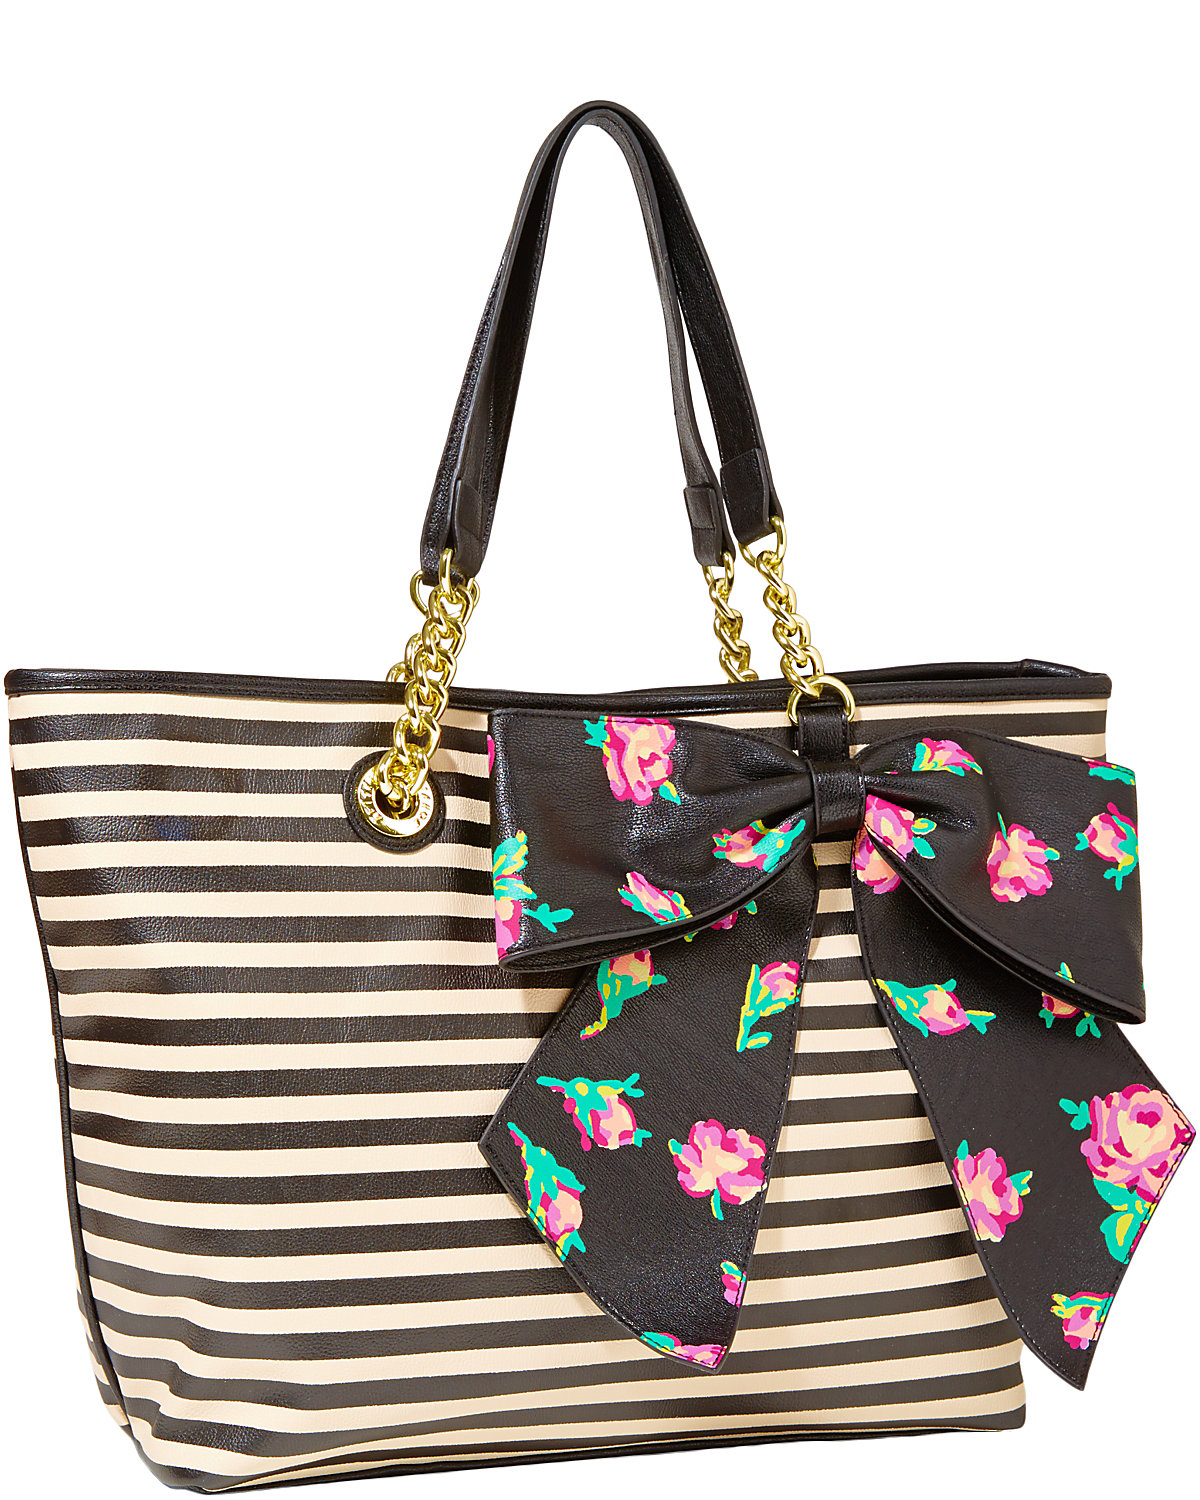 Latest Designer bags and sunglasses for women by Betsey Johnson 2014-2015 (3)